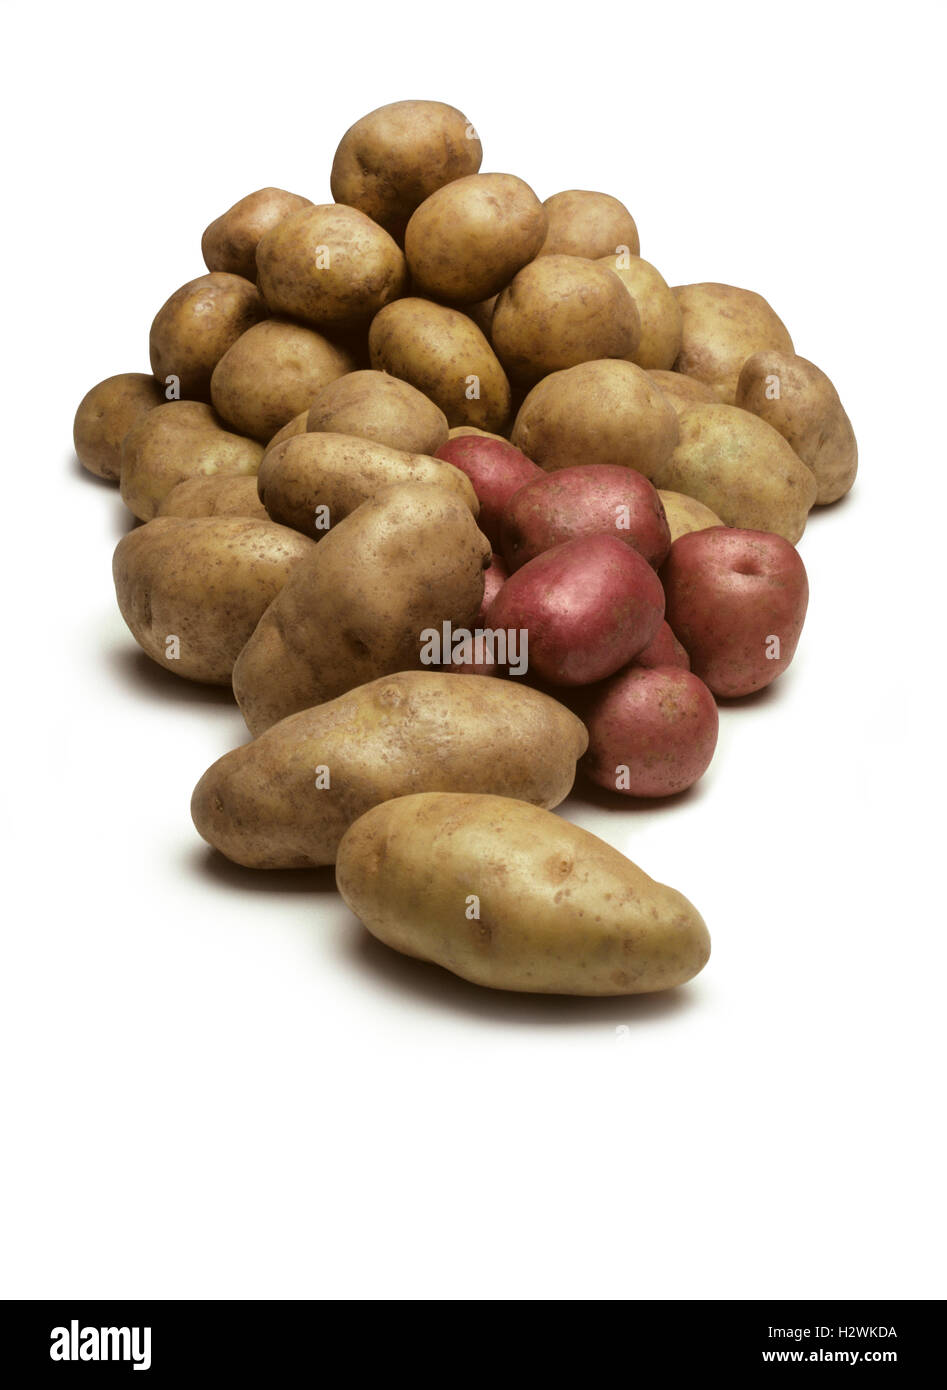 A pile of various types of potatoes isolated on a white background - Stock Image